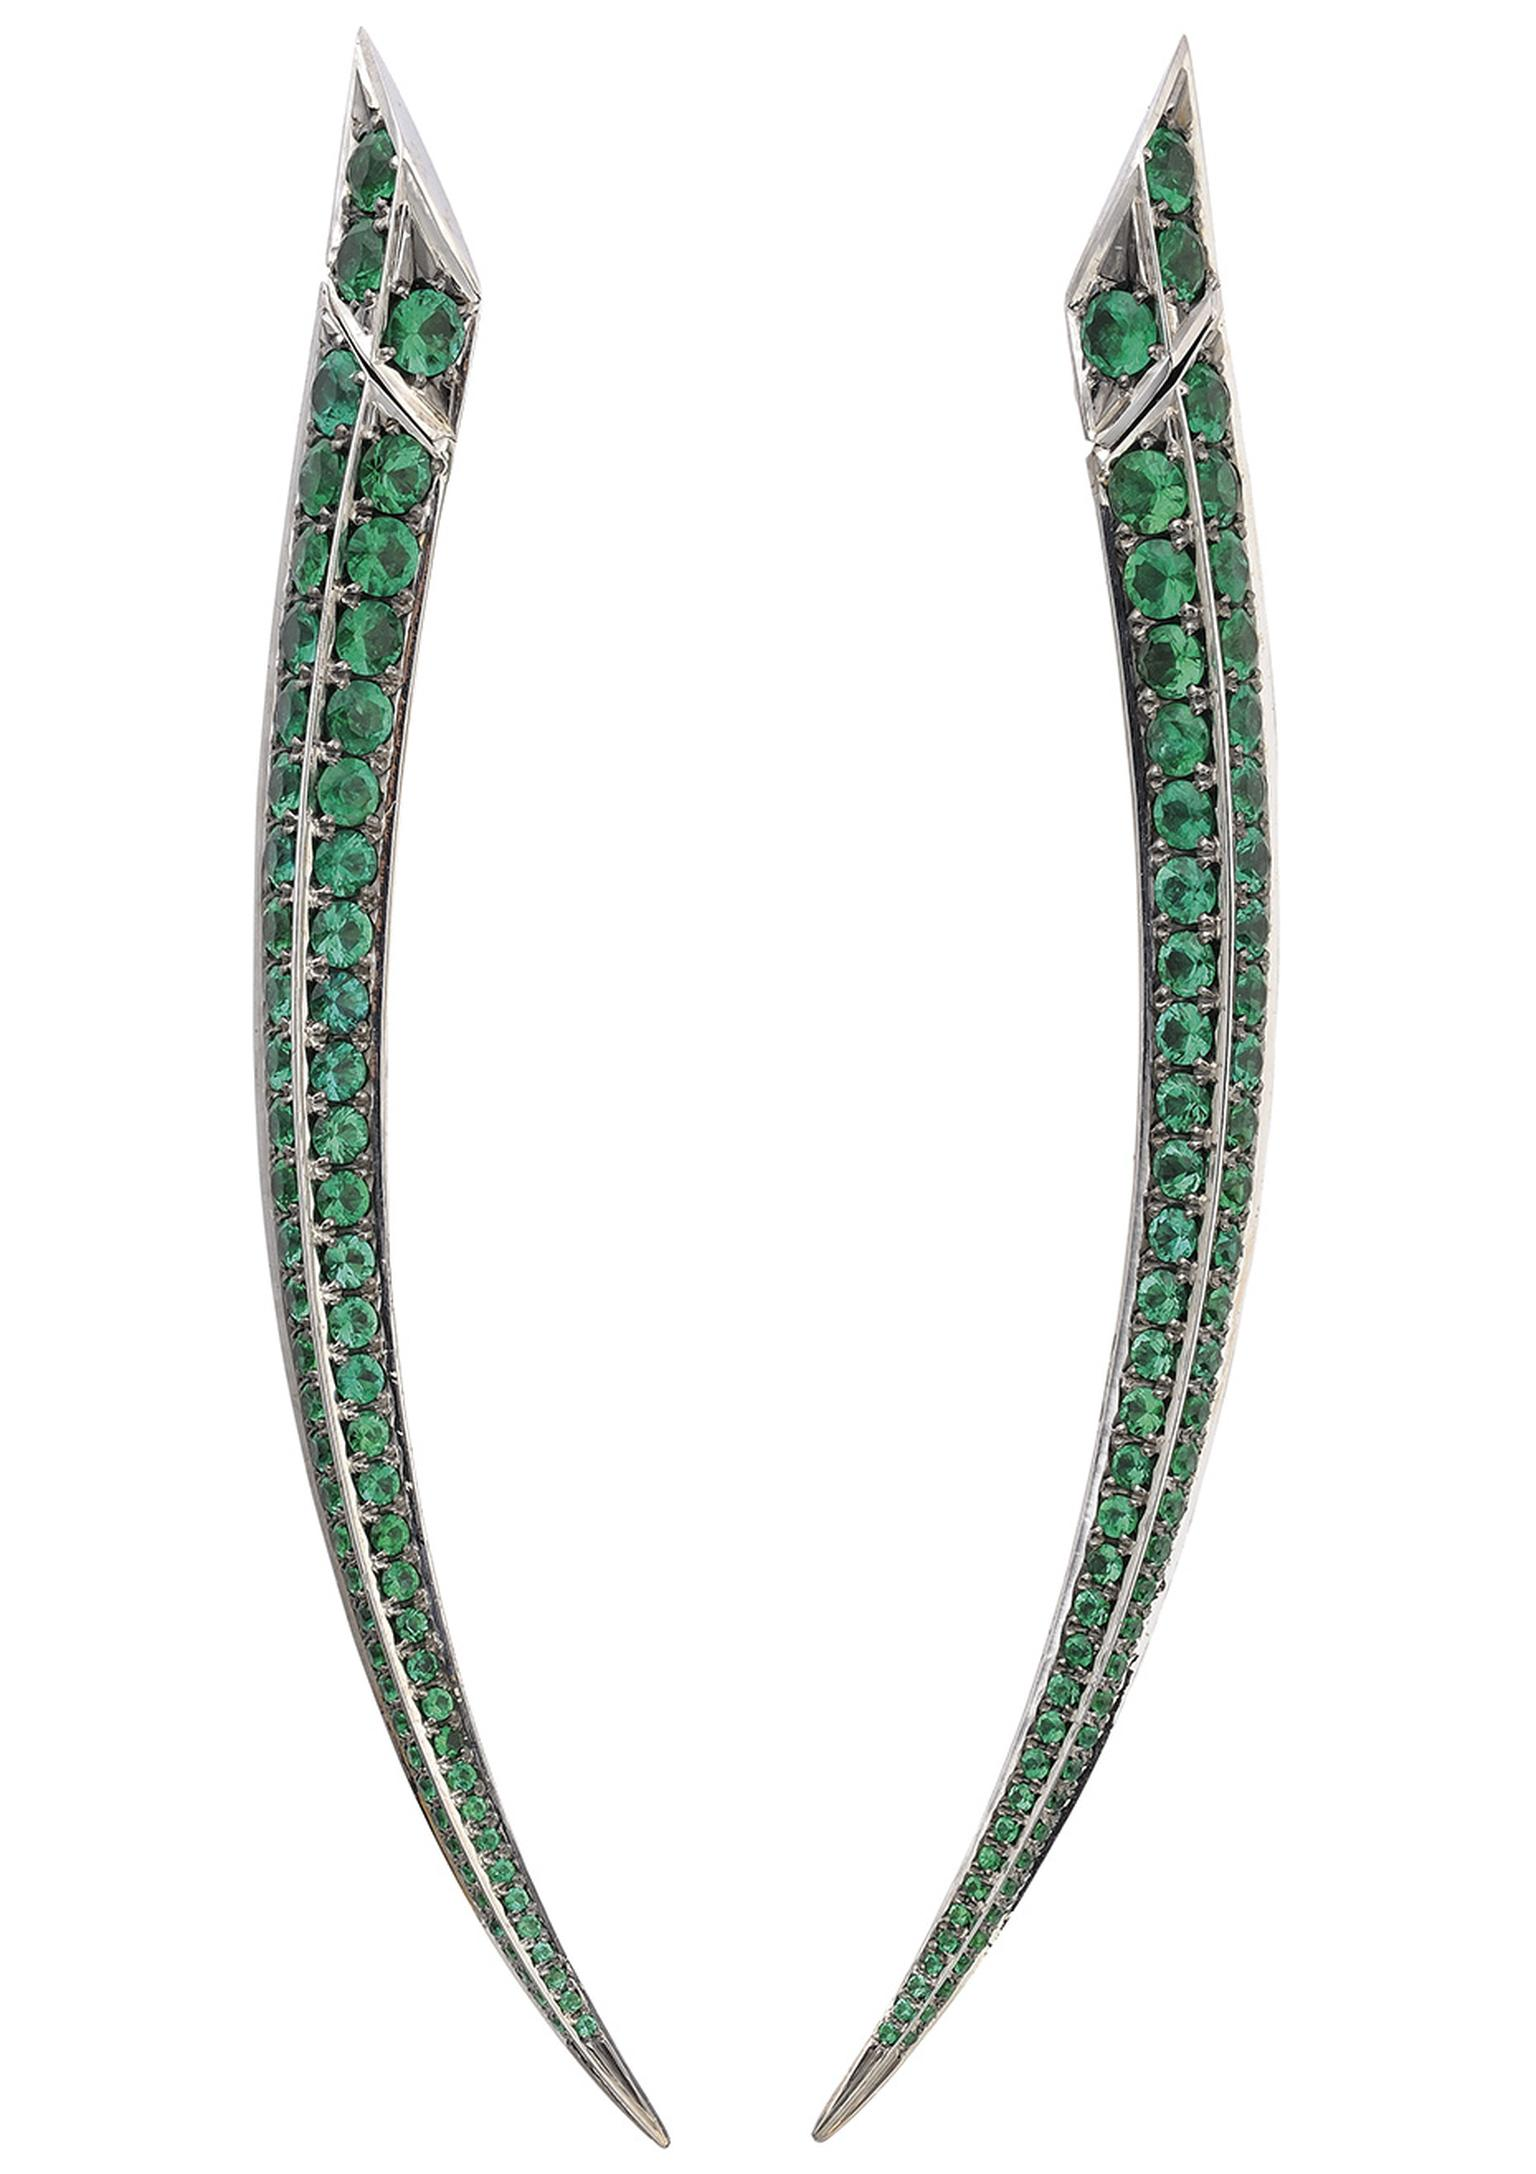 Shaun Leane for Gemfields Sabre earrings set with pavé Gemfields emeralds